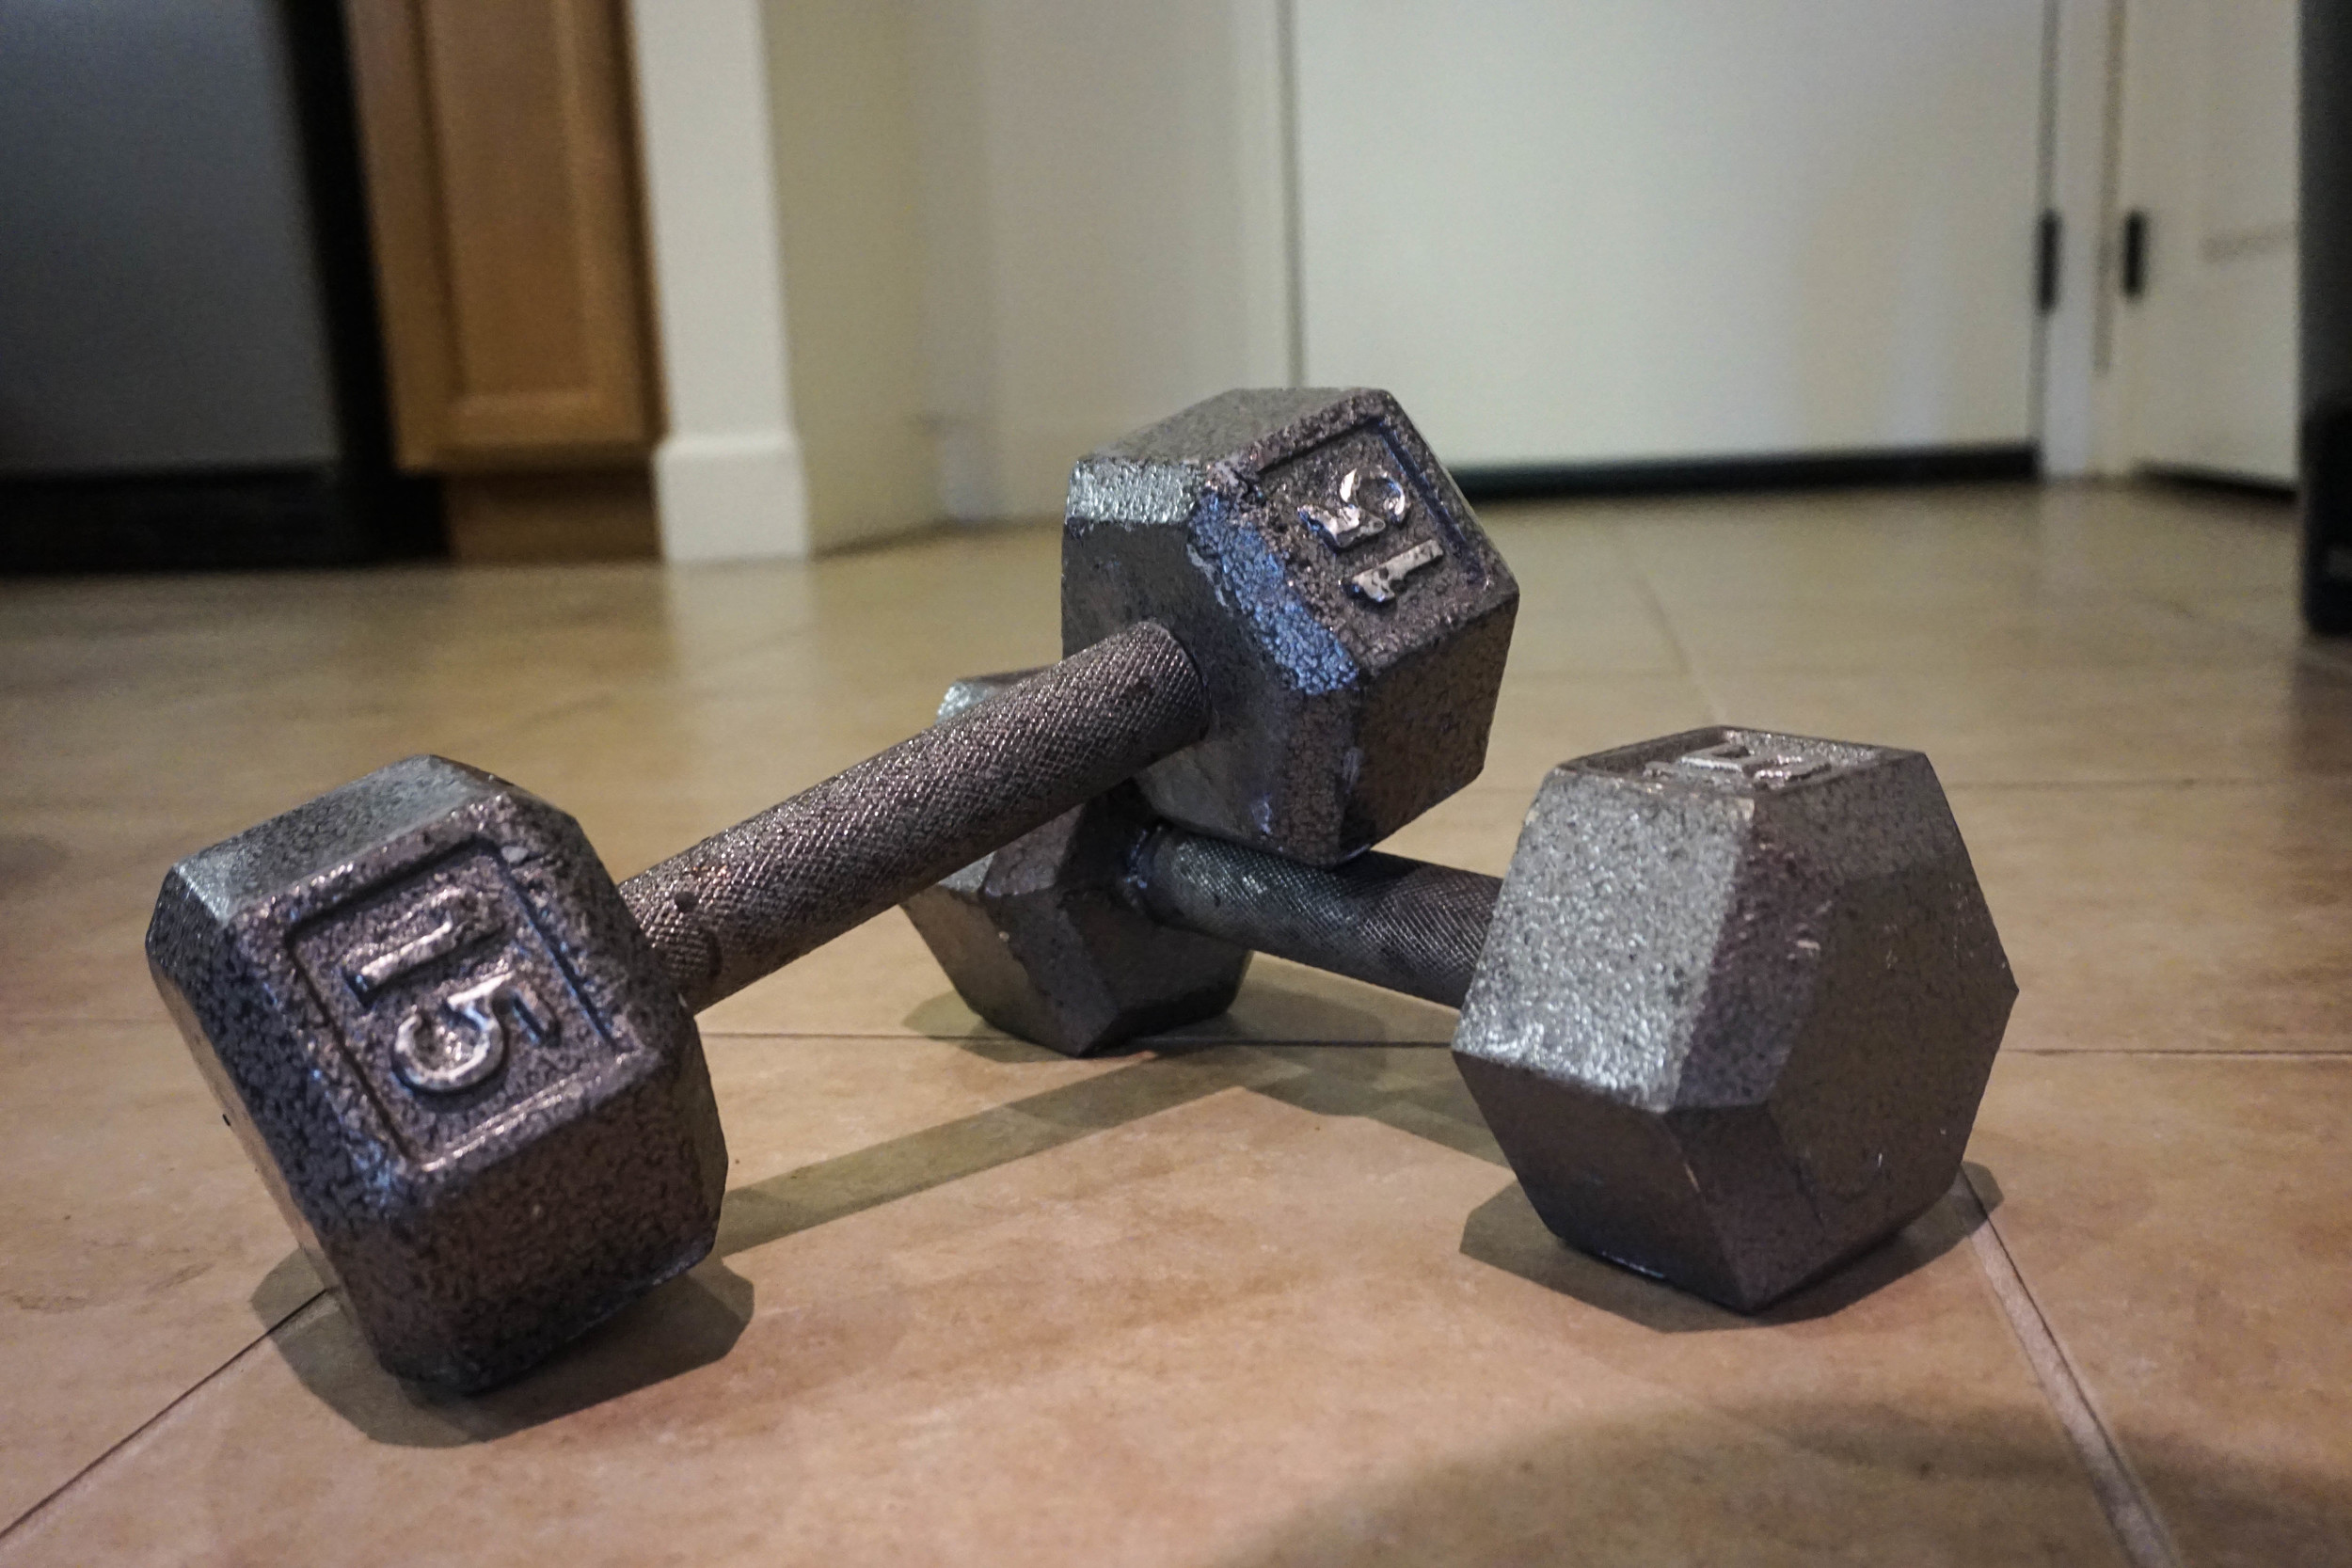 dumbbells for in home workout